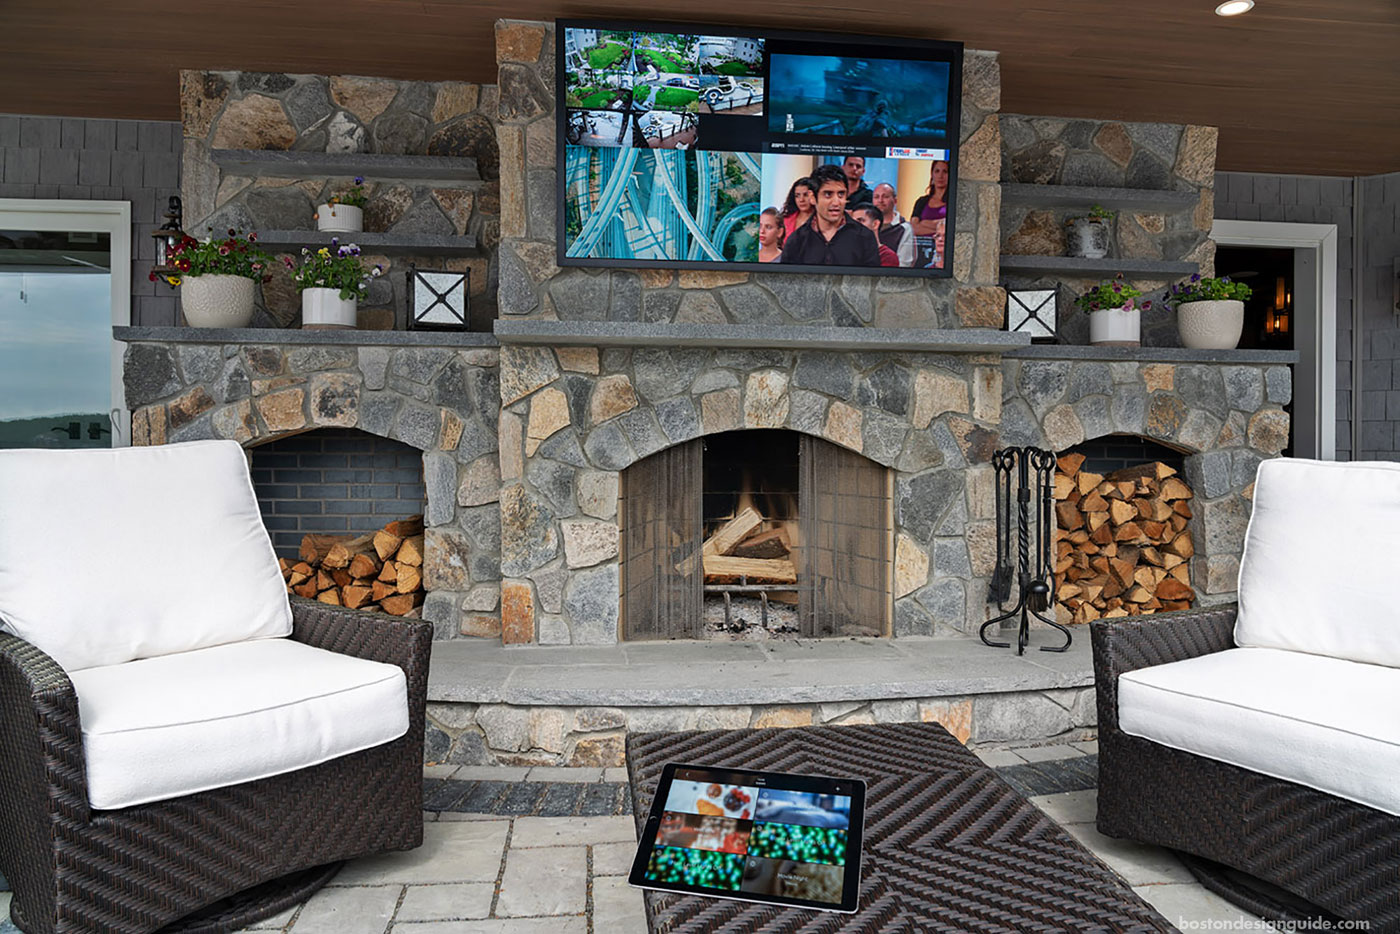 Outdoor living space integrated with smart technology by SDI